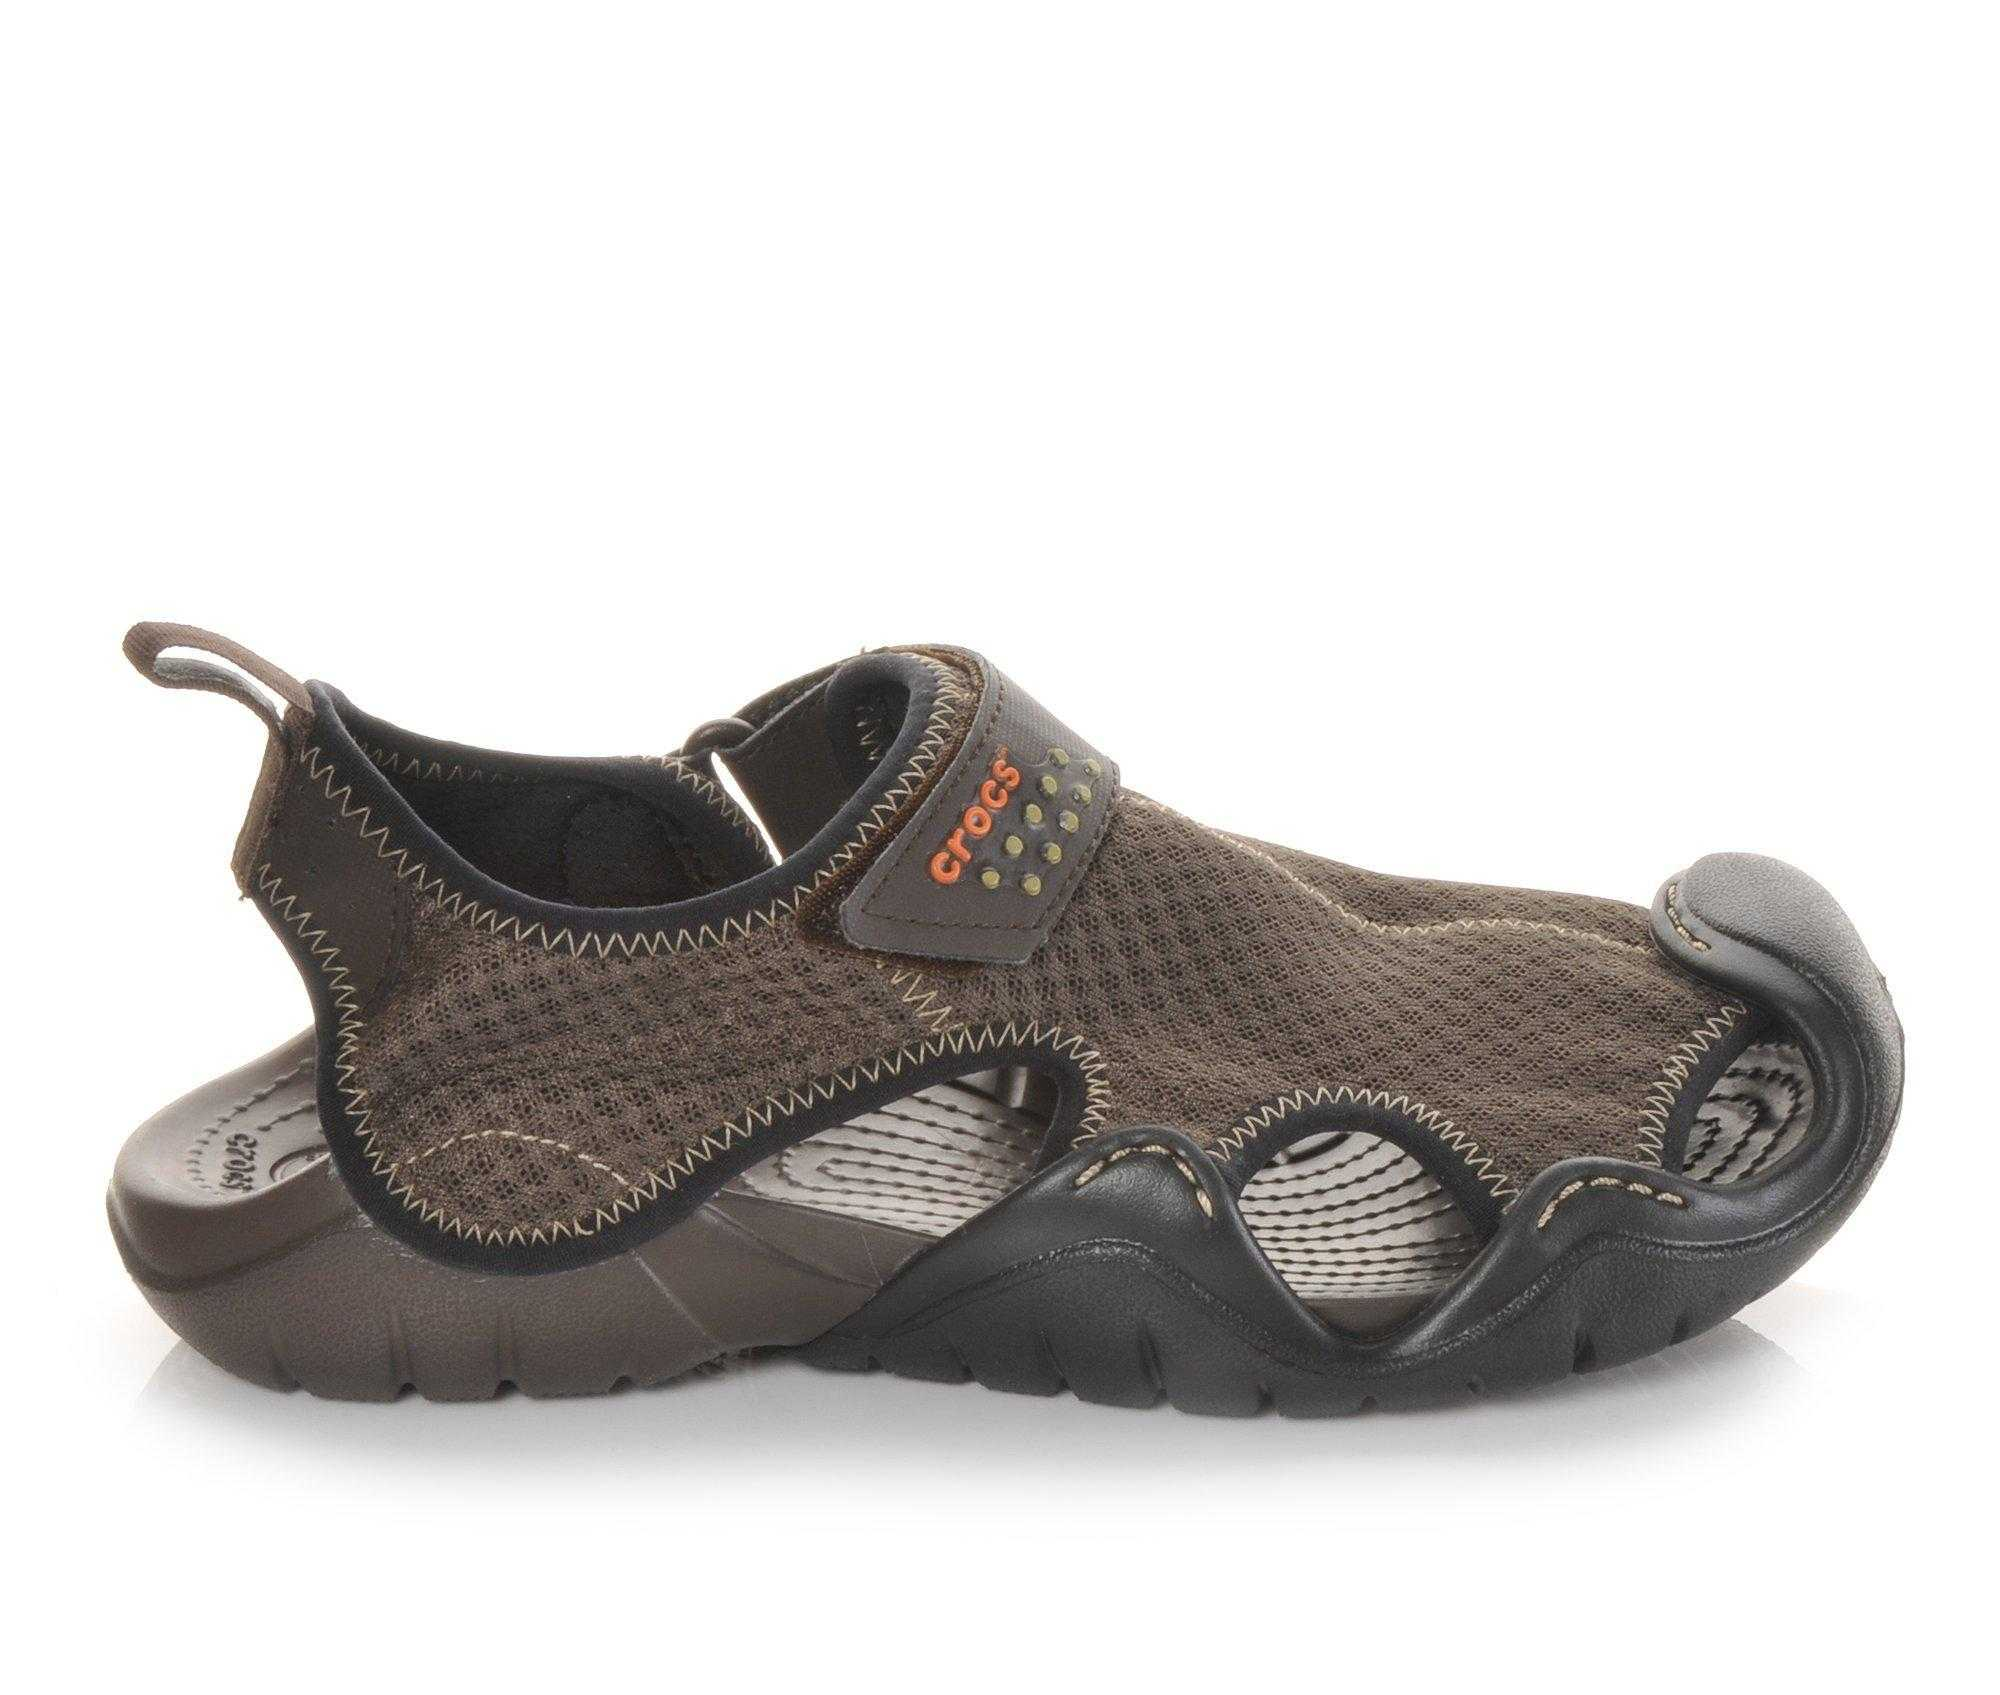 Crocs Men's Swiftwater Mesh Sandal: Kayak Fishing